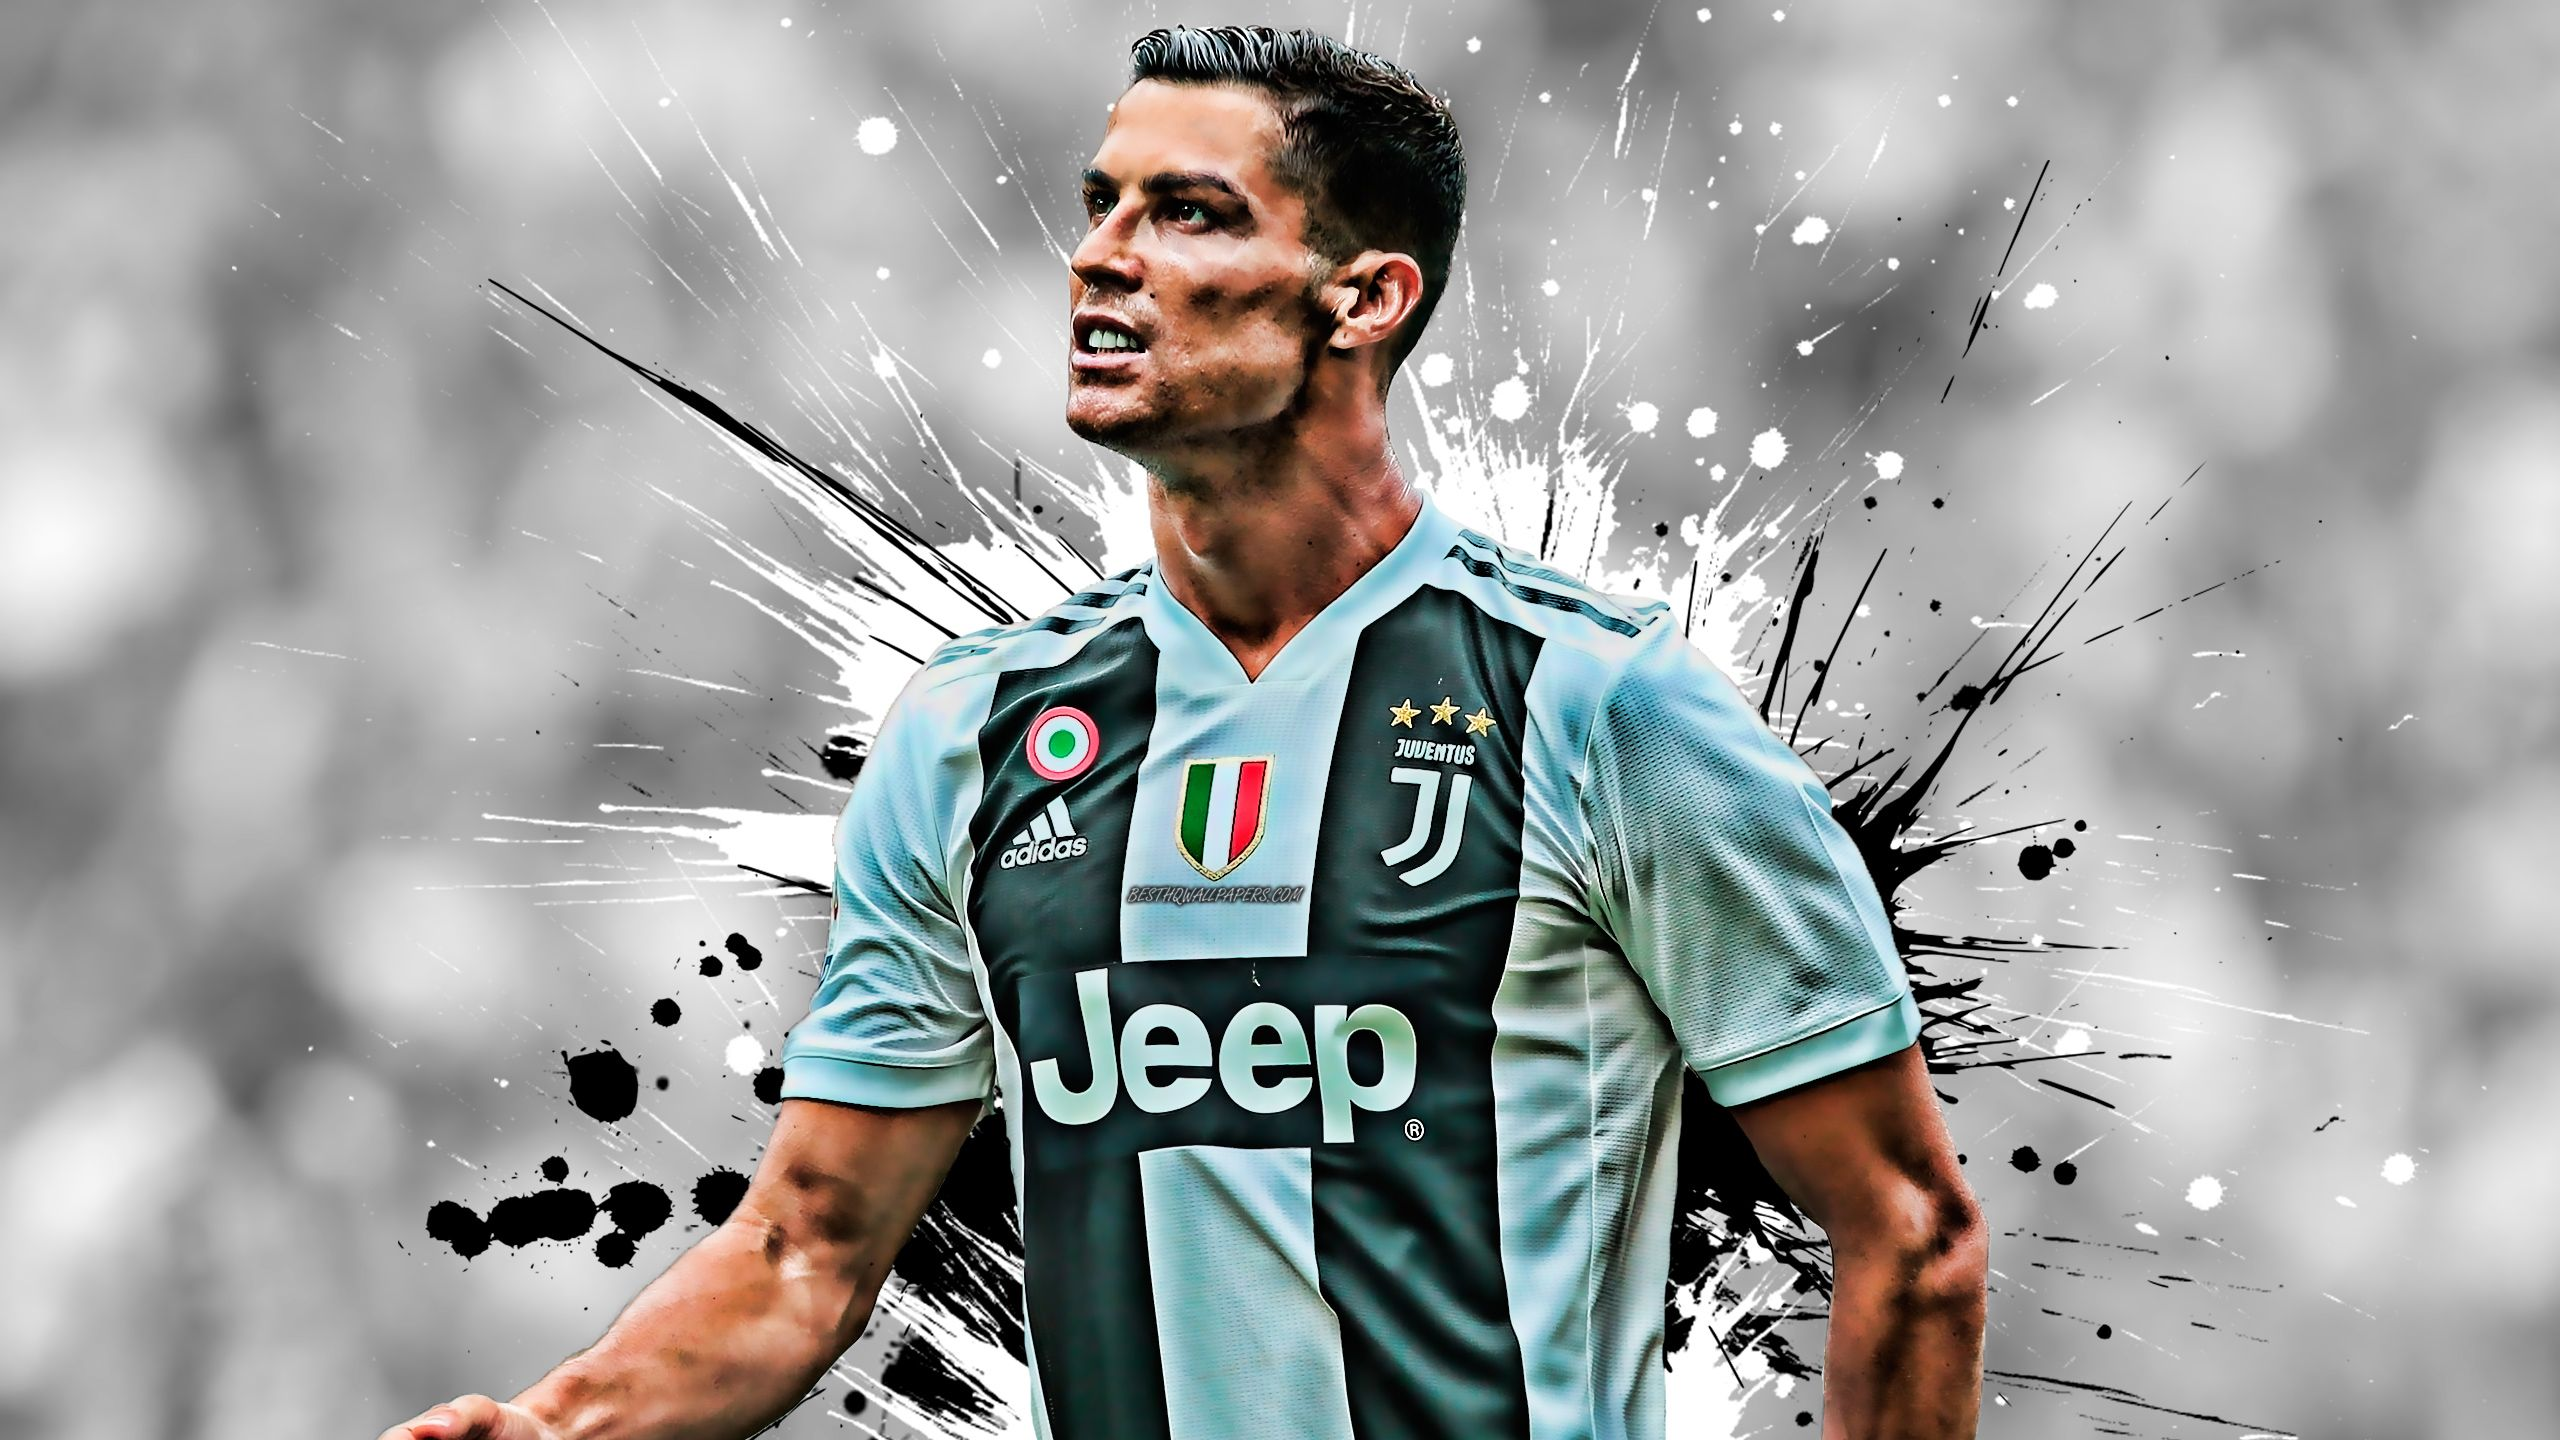 Cr7 4k Wallpapers Top Free Cr7 4k Backgrounds Wallpaperaccess